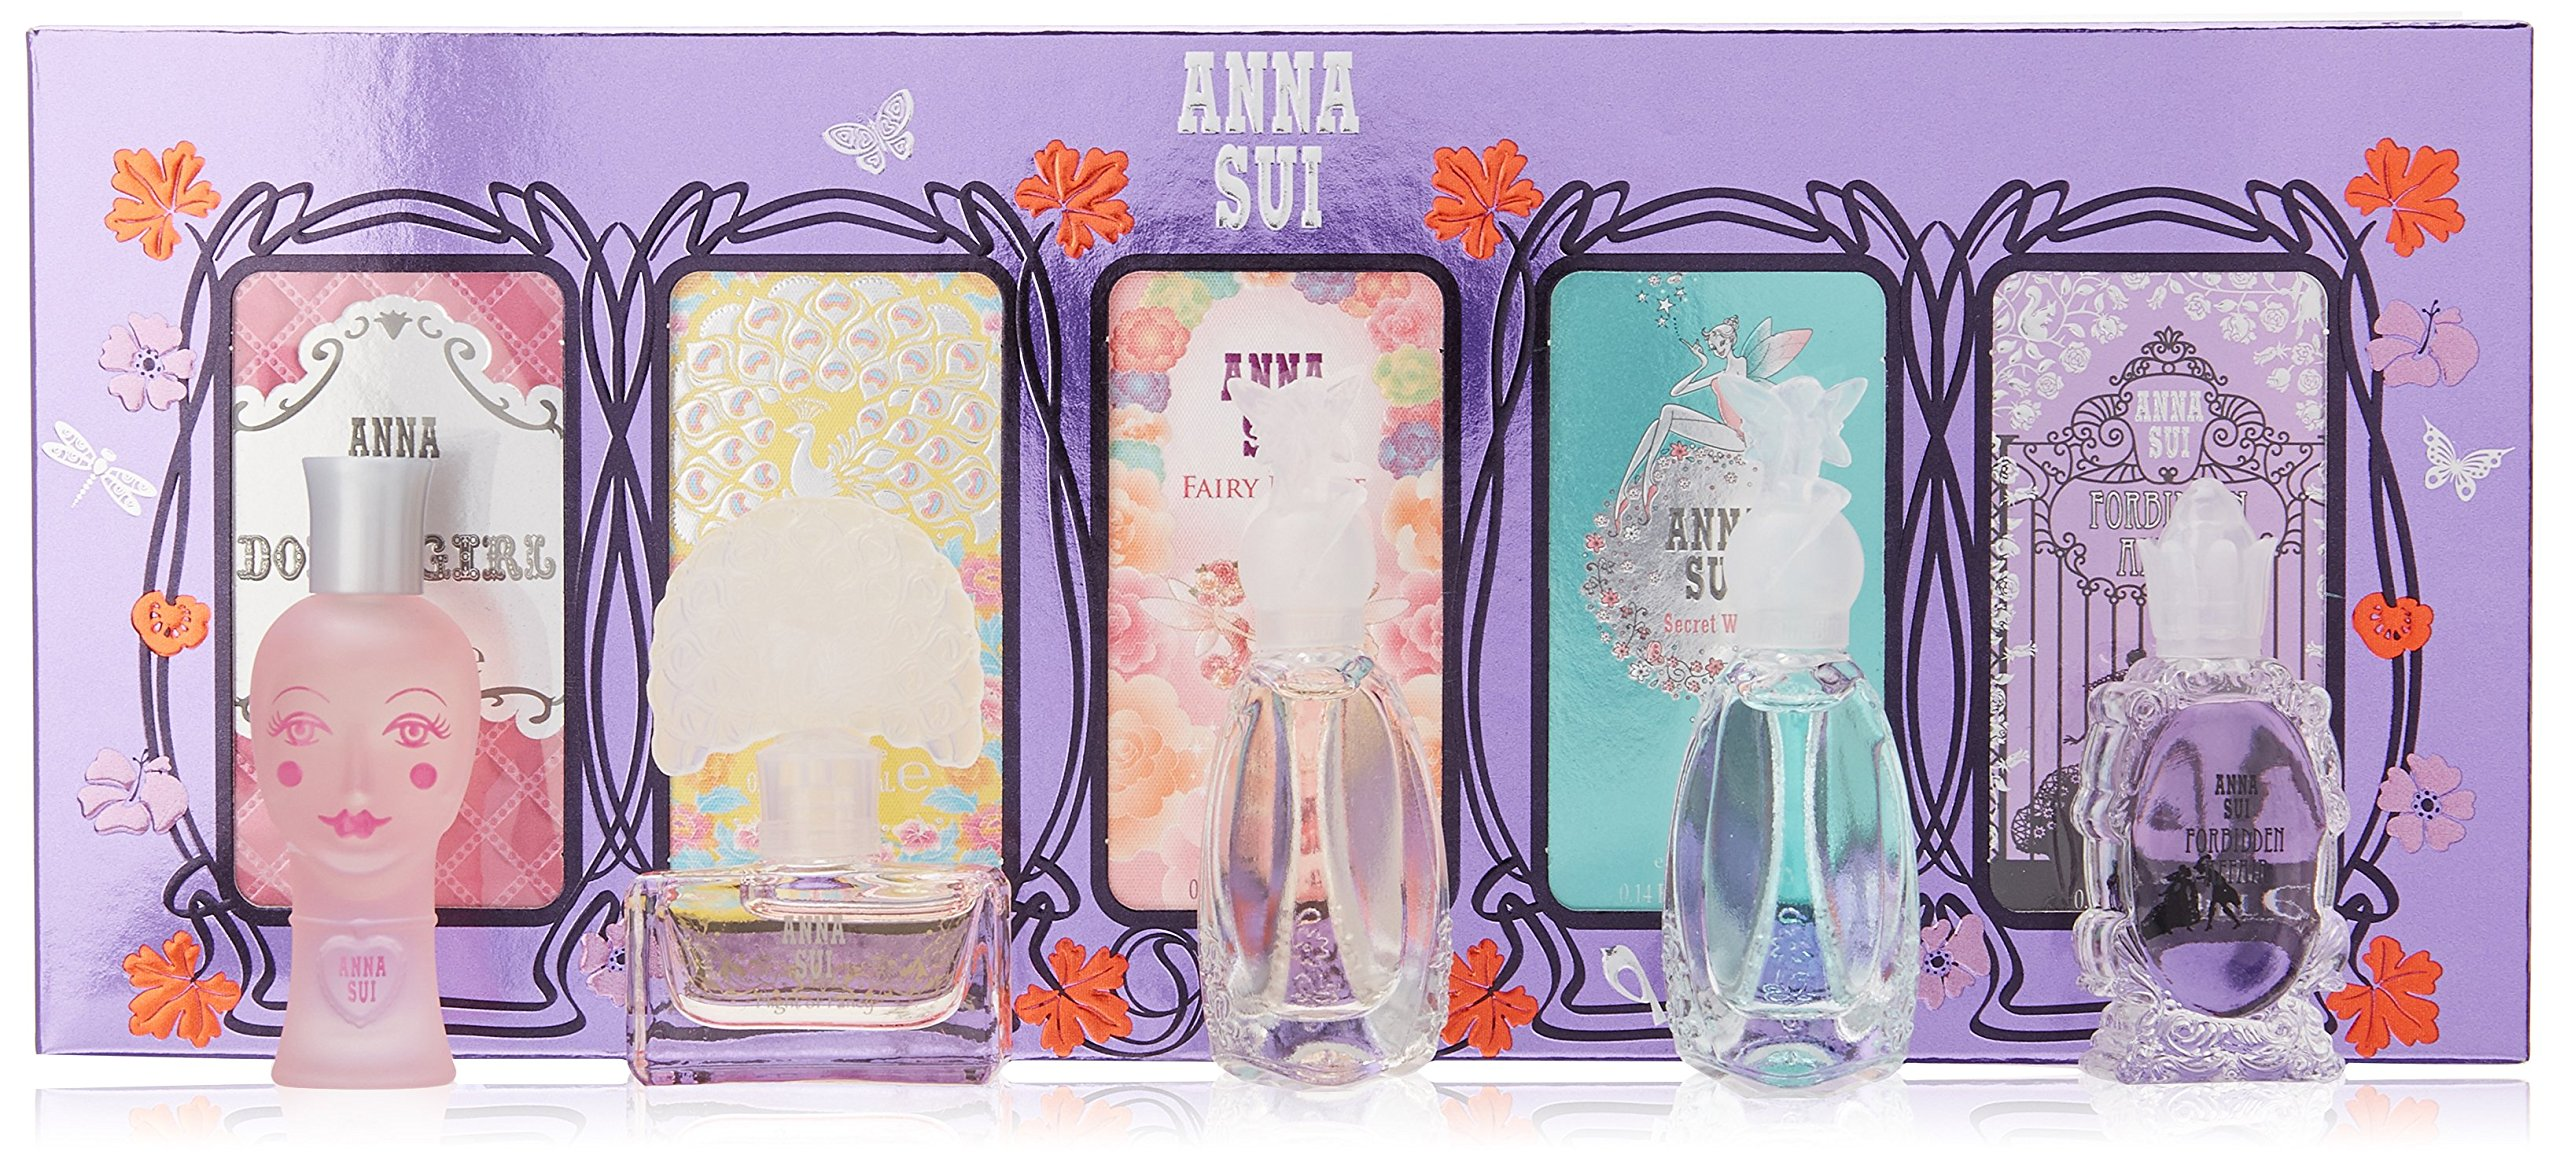 Anna Sui Fragrance Gift Collection, Miniature by Anna Sui (Image #1)